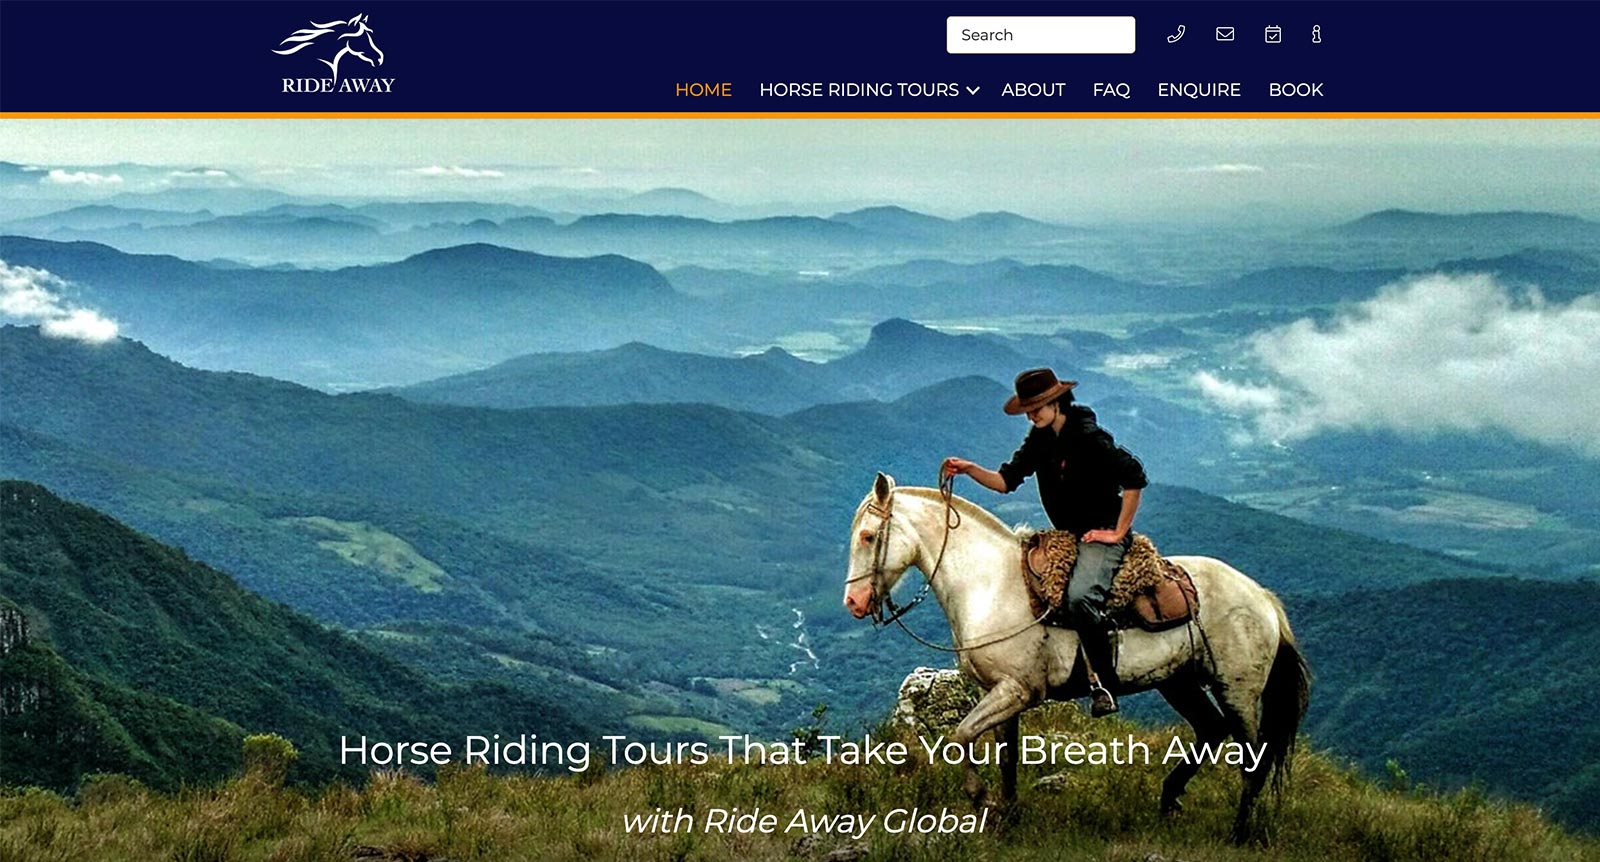 Ride Away Global Horse Riding Tours